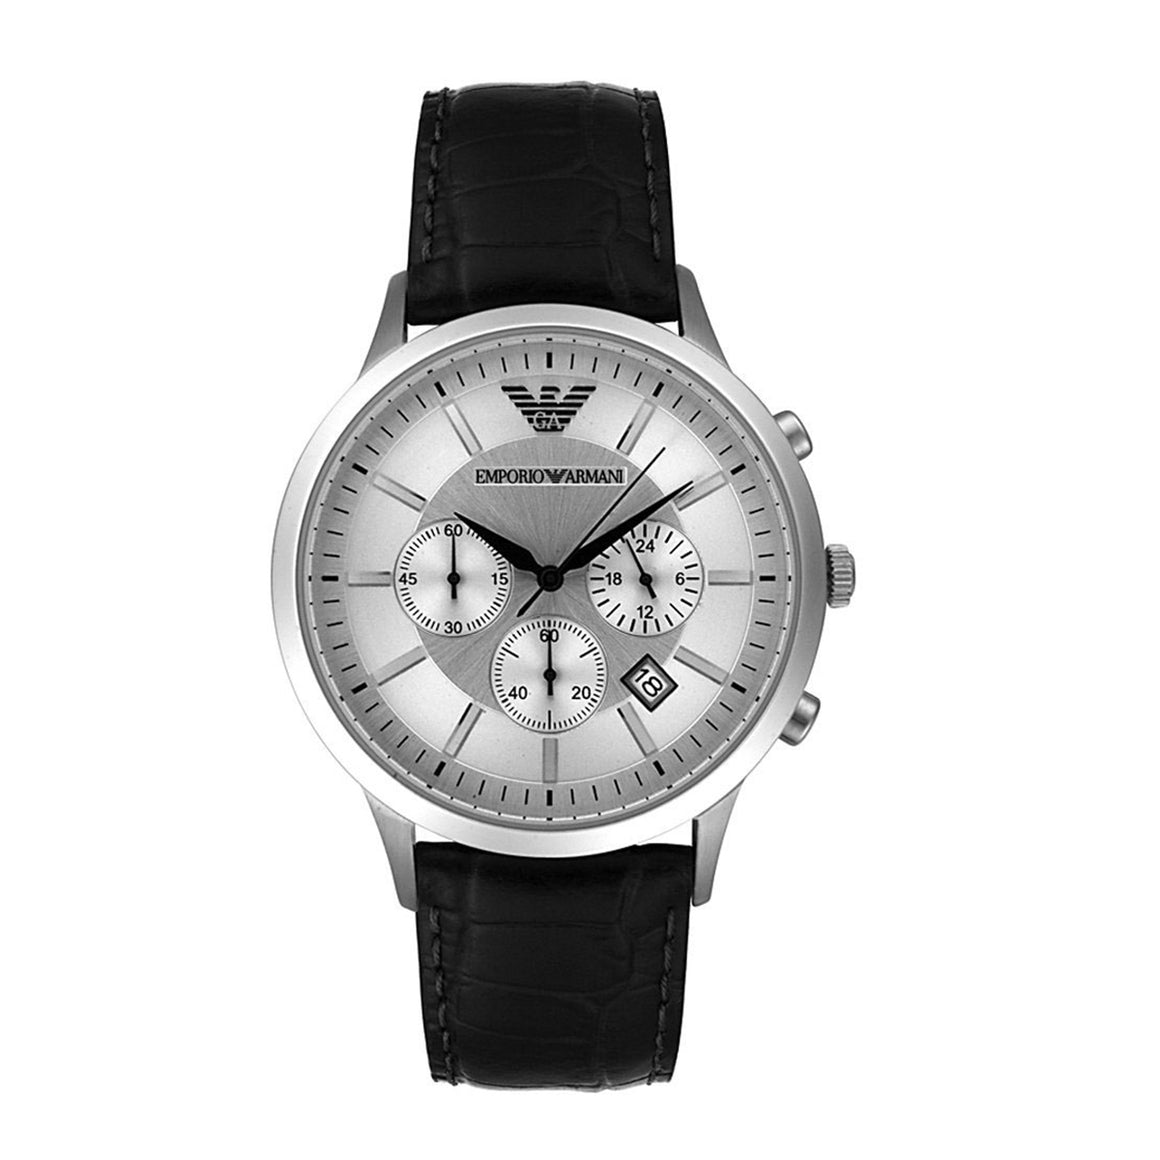 Emporio Armani AR2432 Men's Black Leather Watch